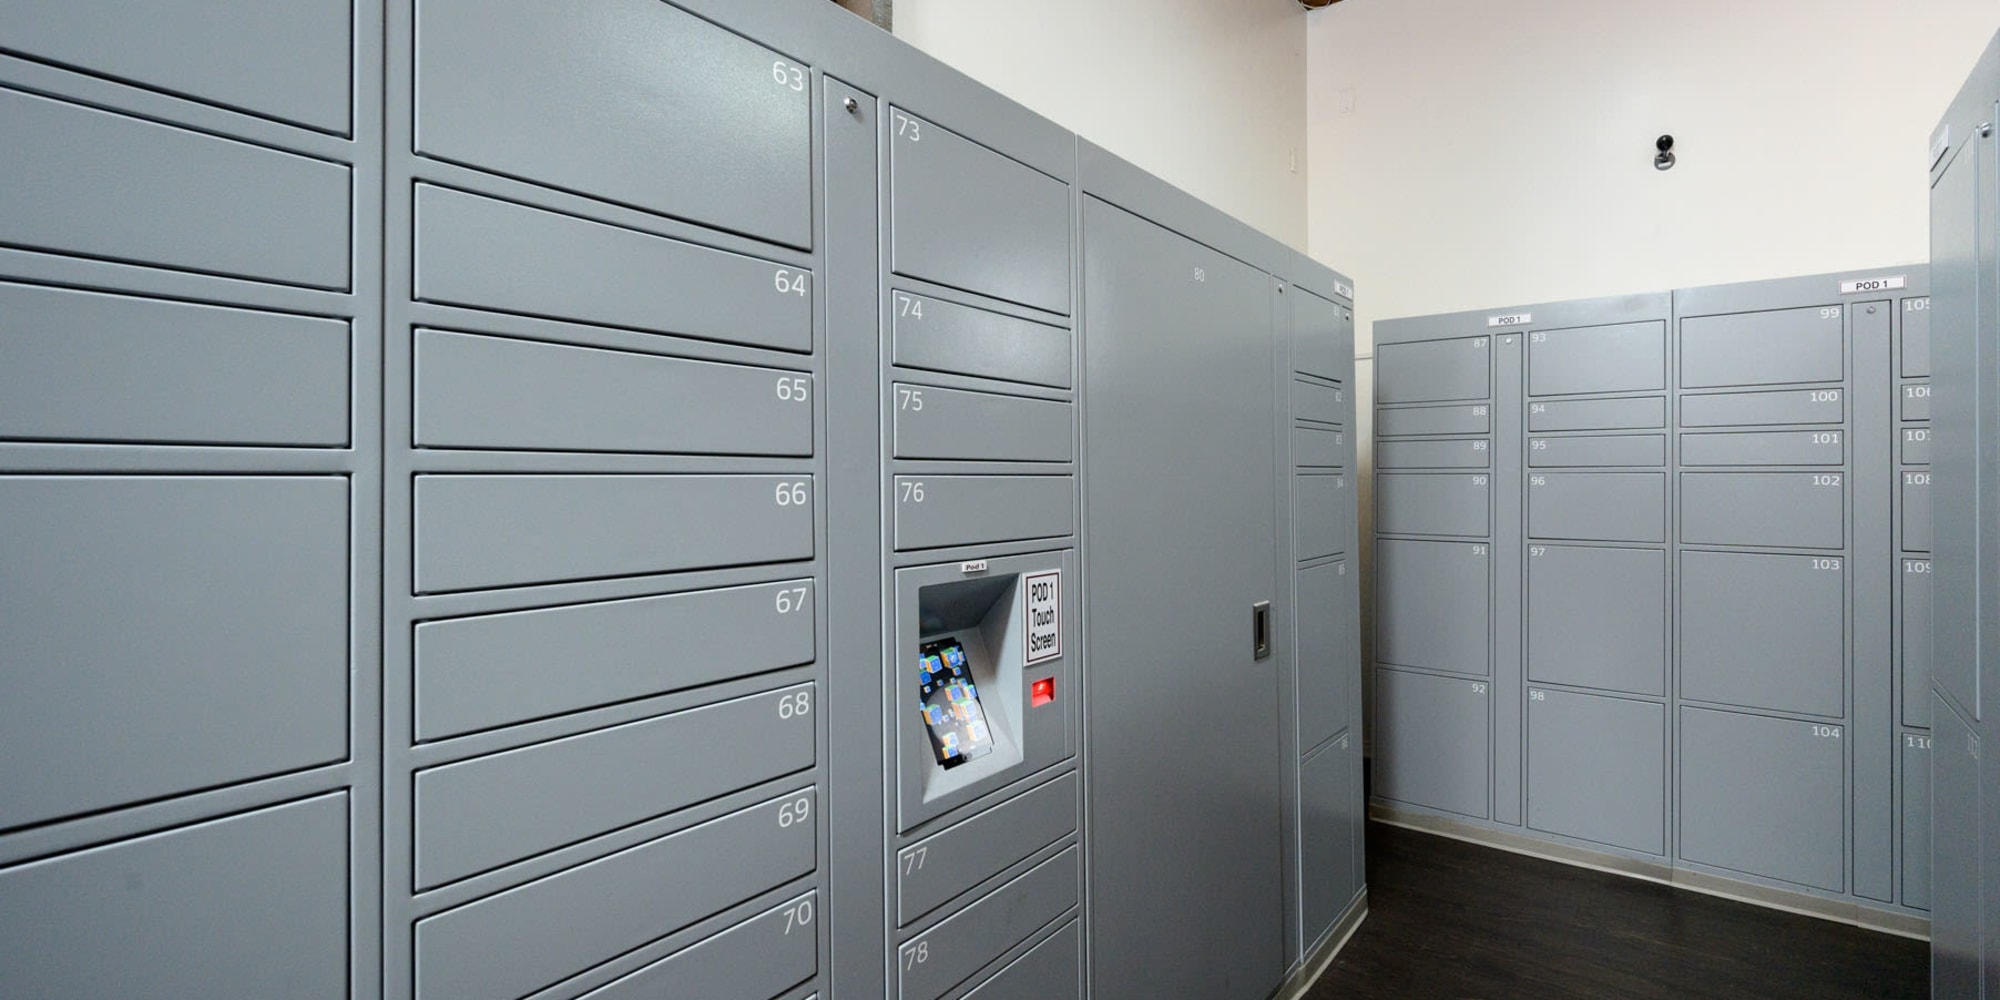 Resident secure package lockers at Mariners Village in Marina del Rey, California